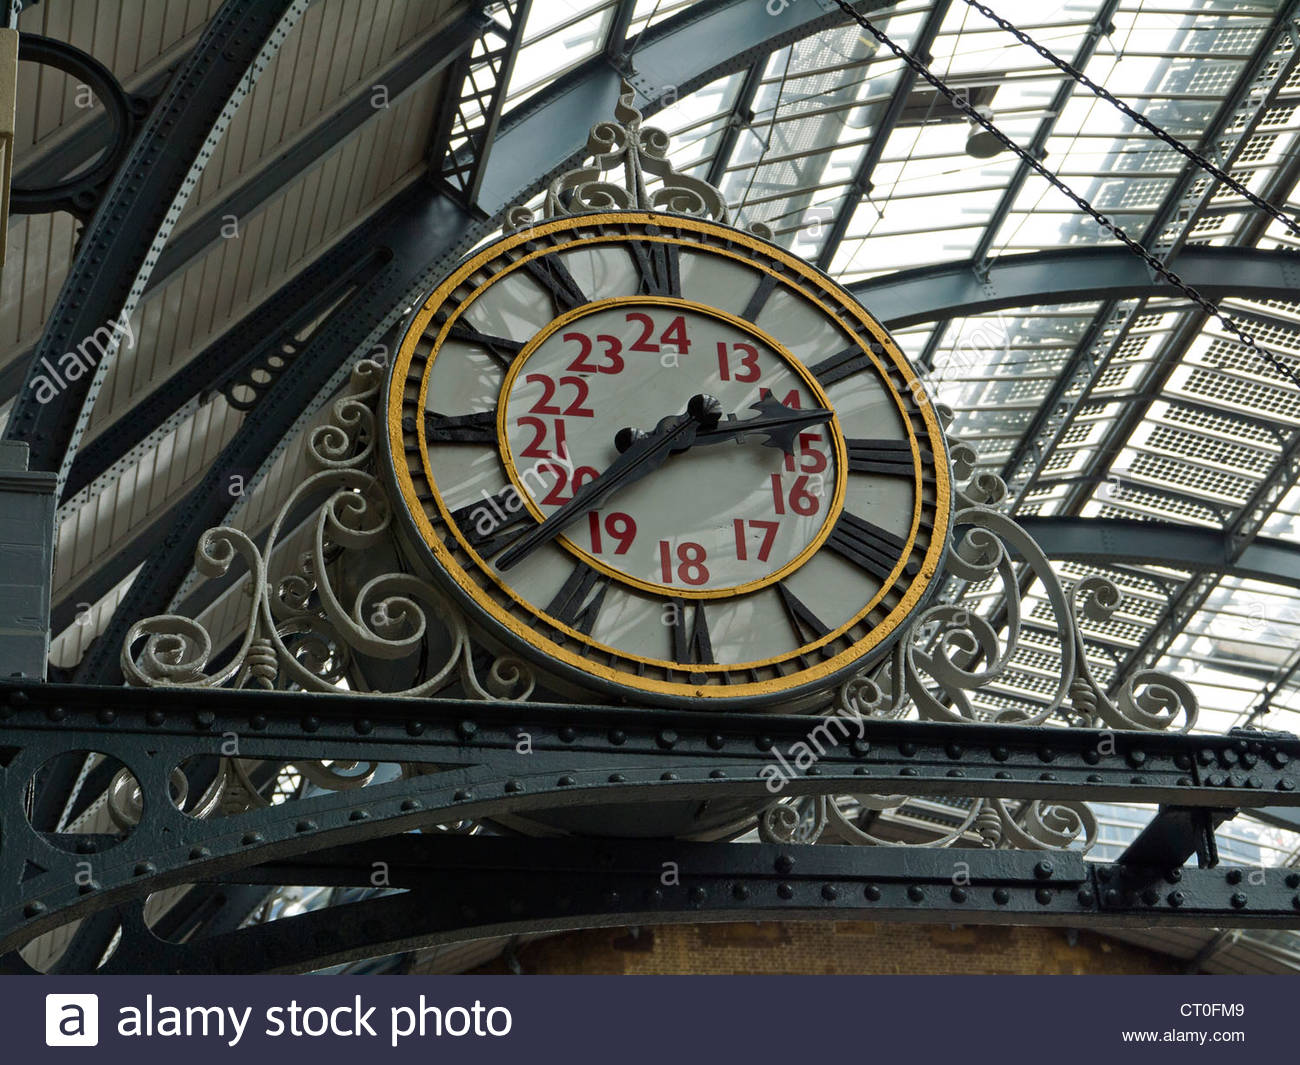 Kings Cross Railway Station old analogue Clock London England UK - Stock Image